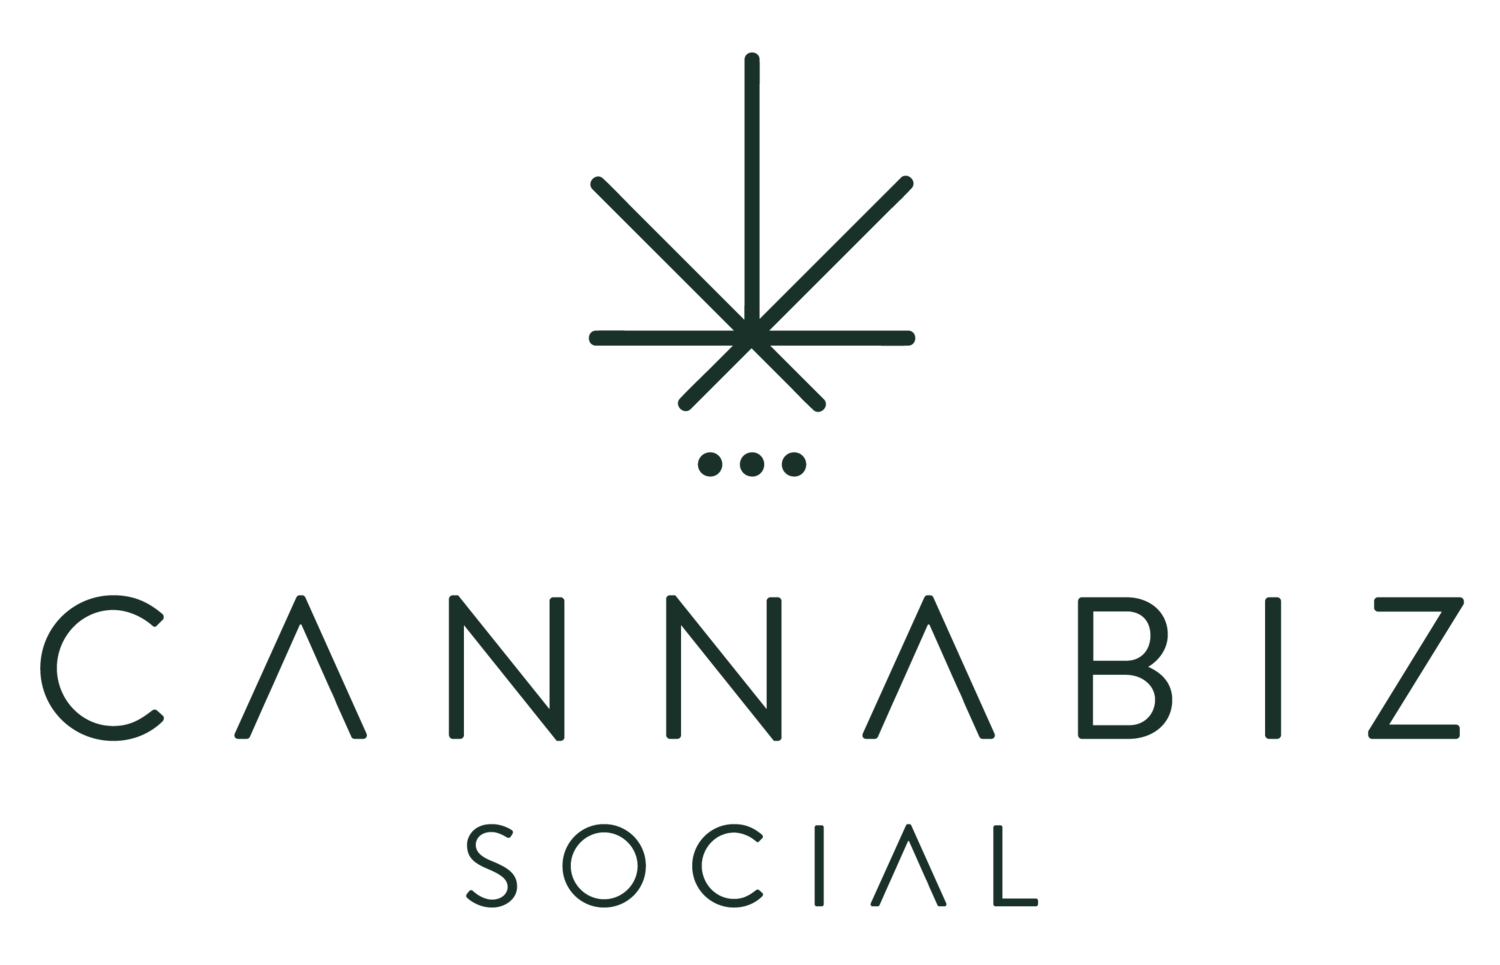 Cannabis Marketing Company | Cannabiz Social